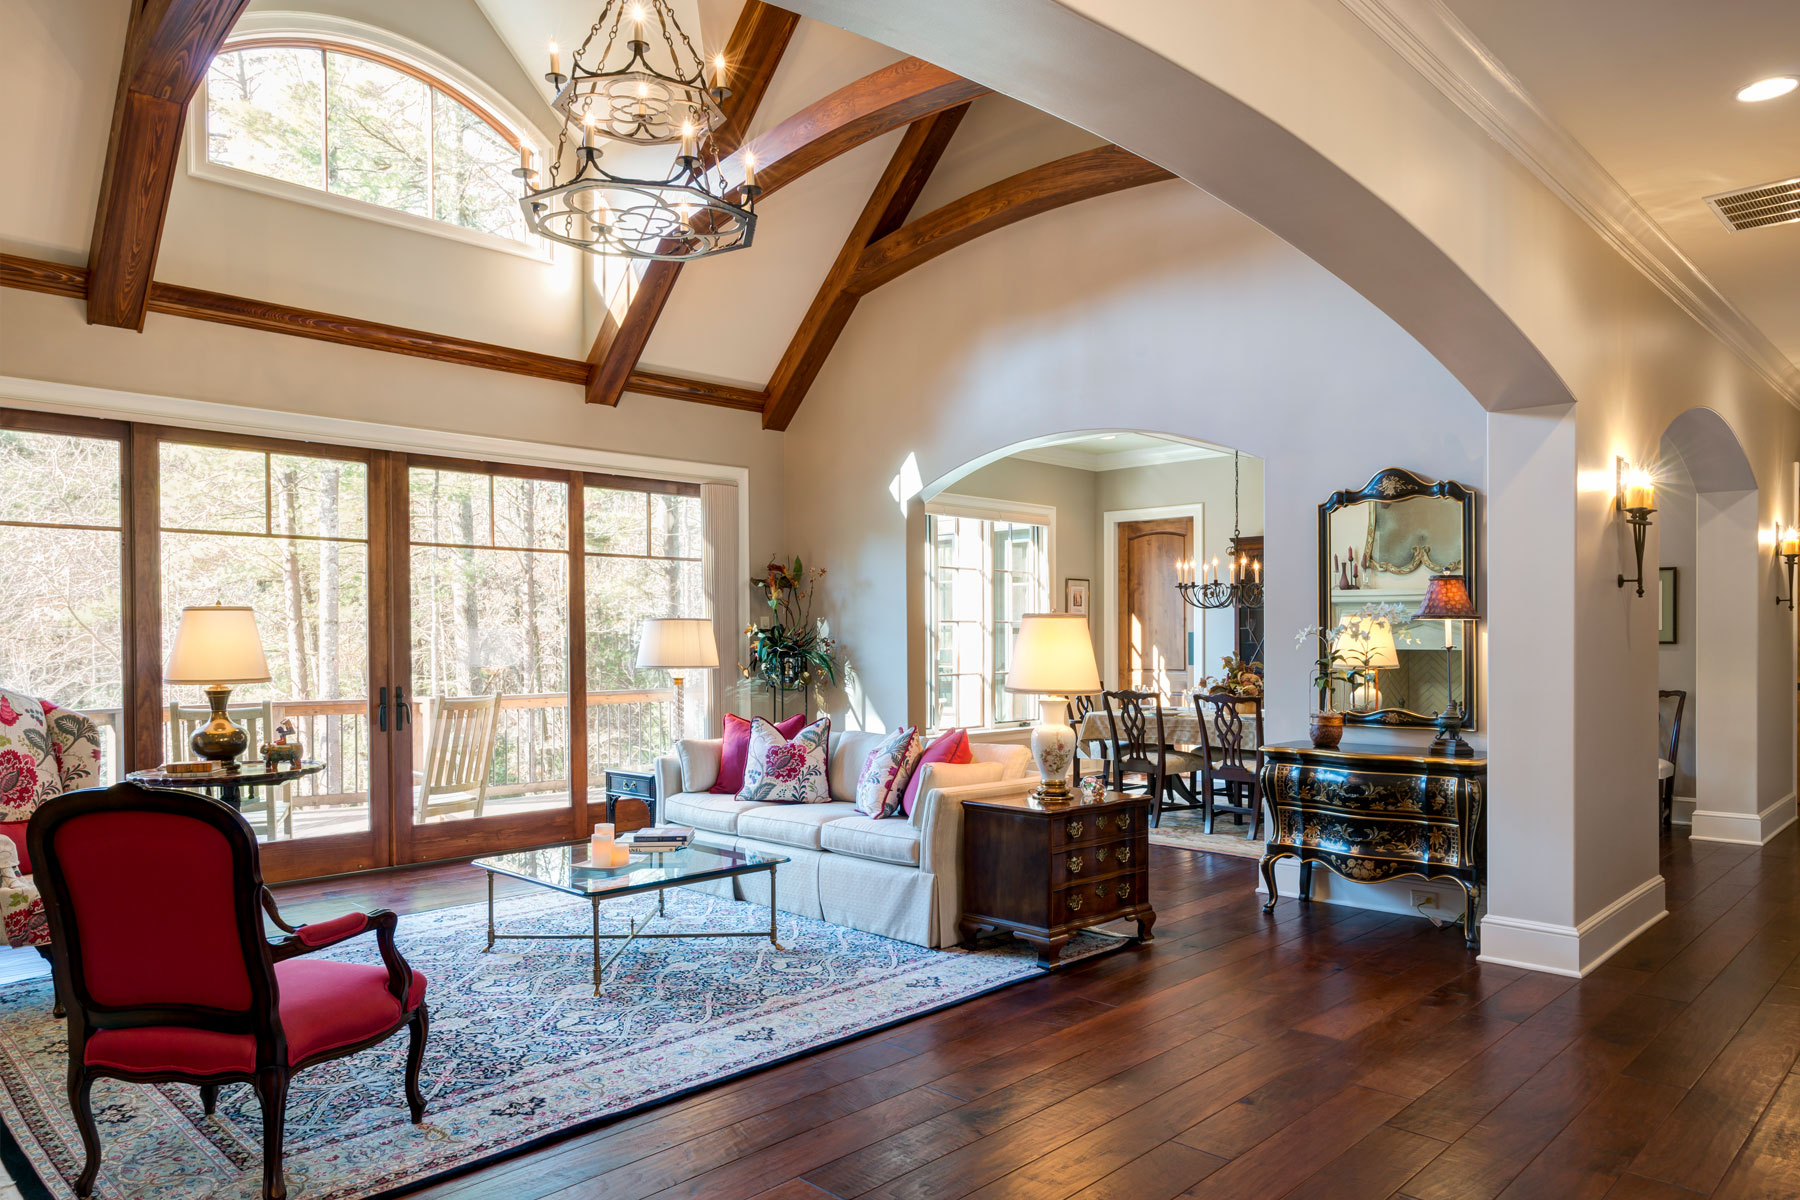 Formal living room with vaulted ceiling with timber beams